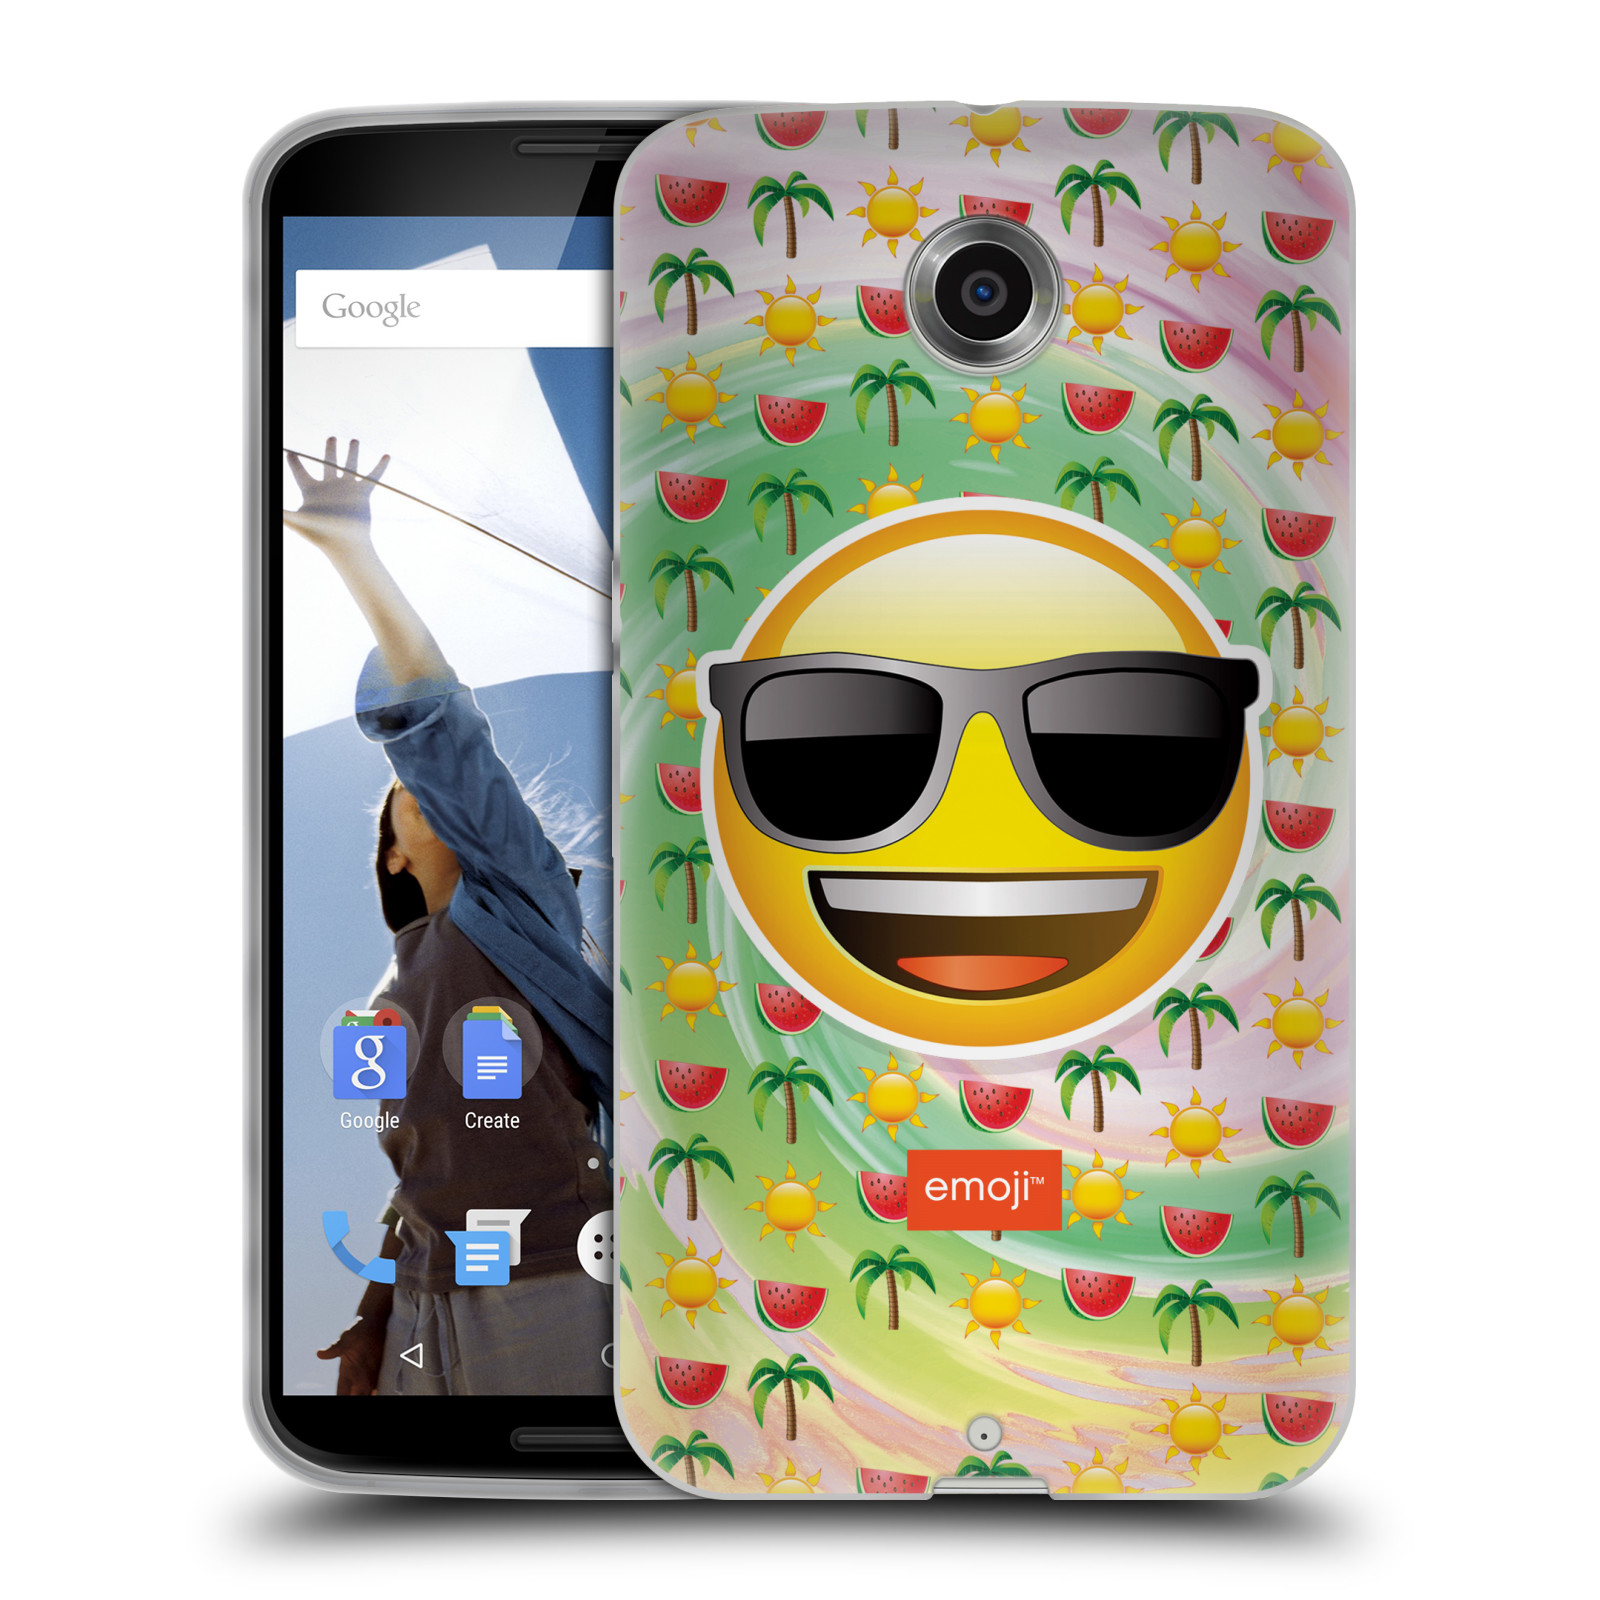 ESN zte zmax evocel case requested that such